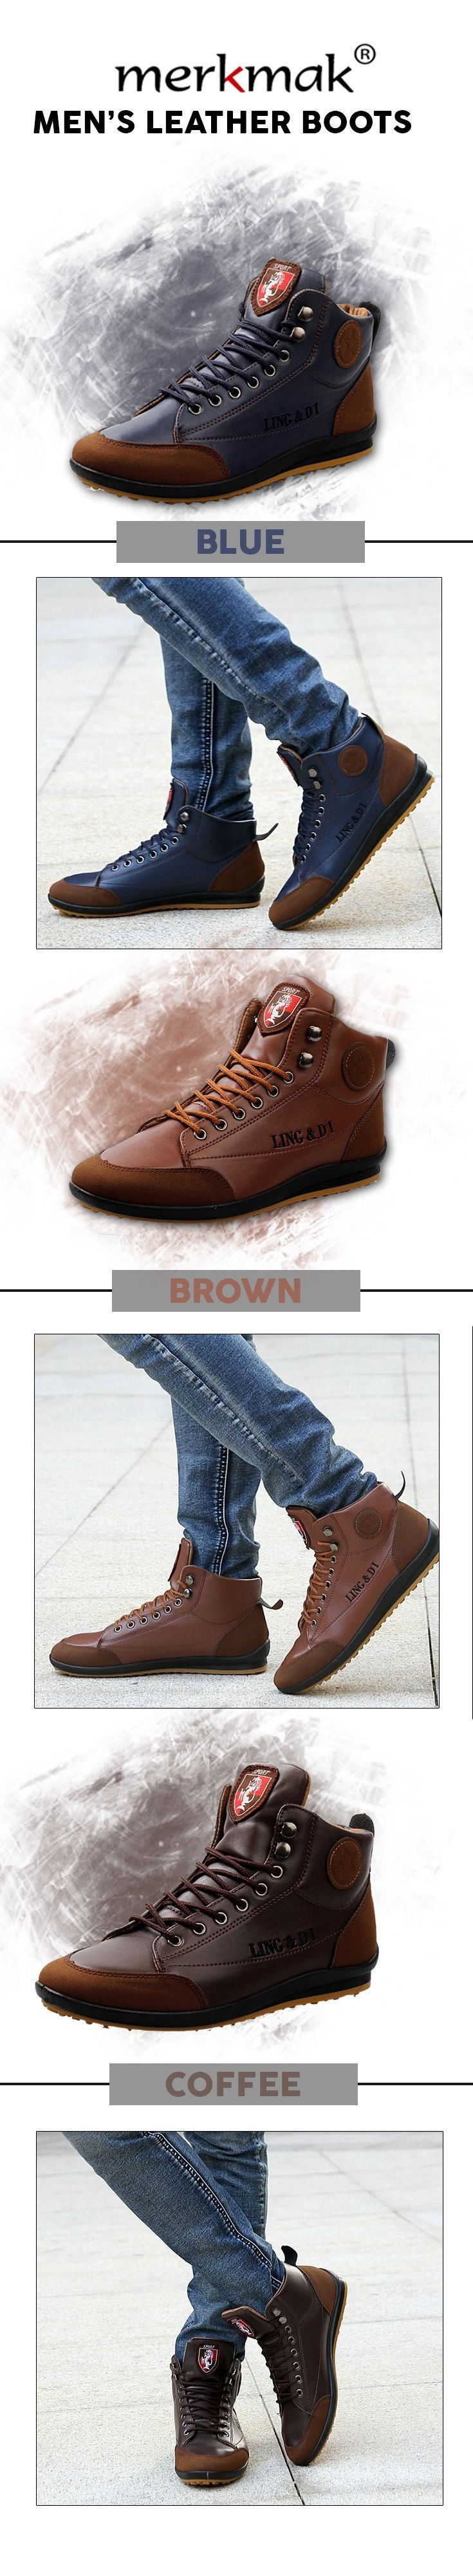 Men s leather high ankle boots Merkmak fashion leather shoes Men s top brand style affordable